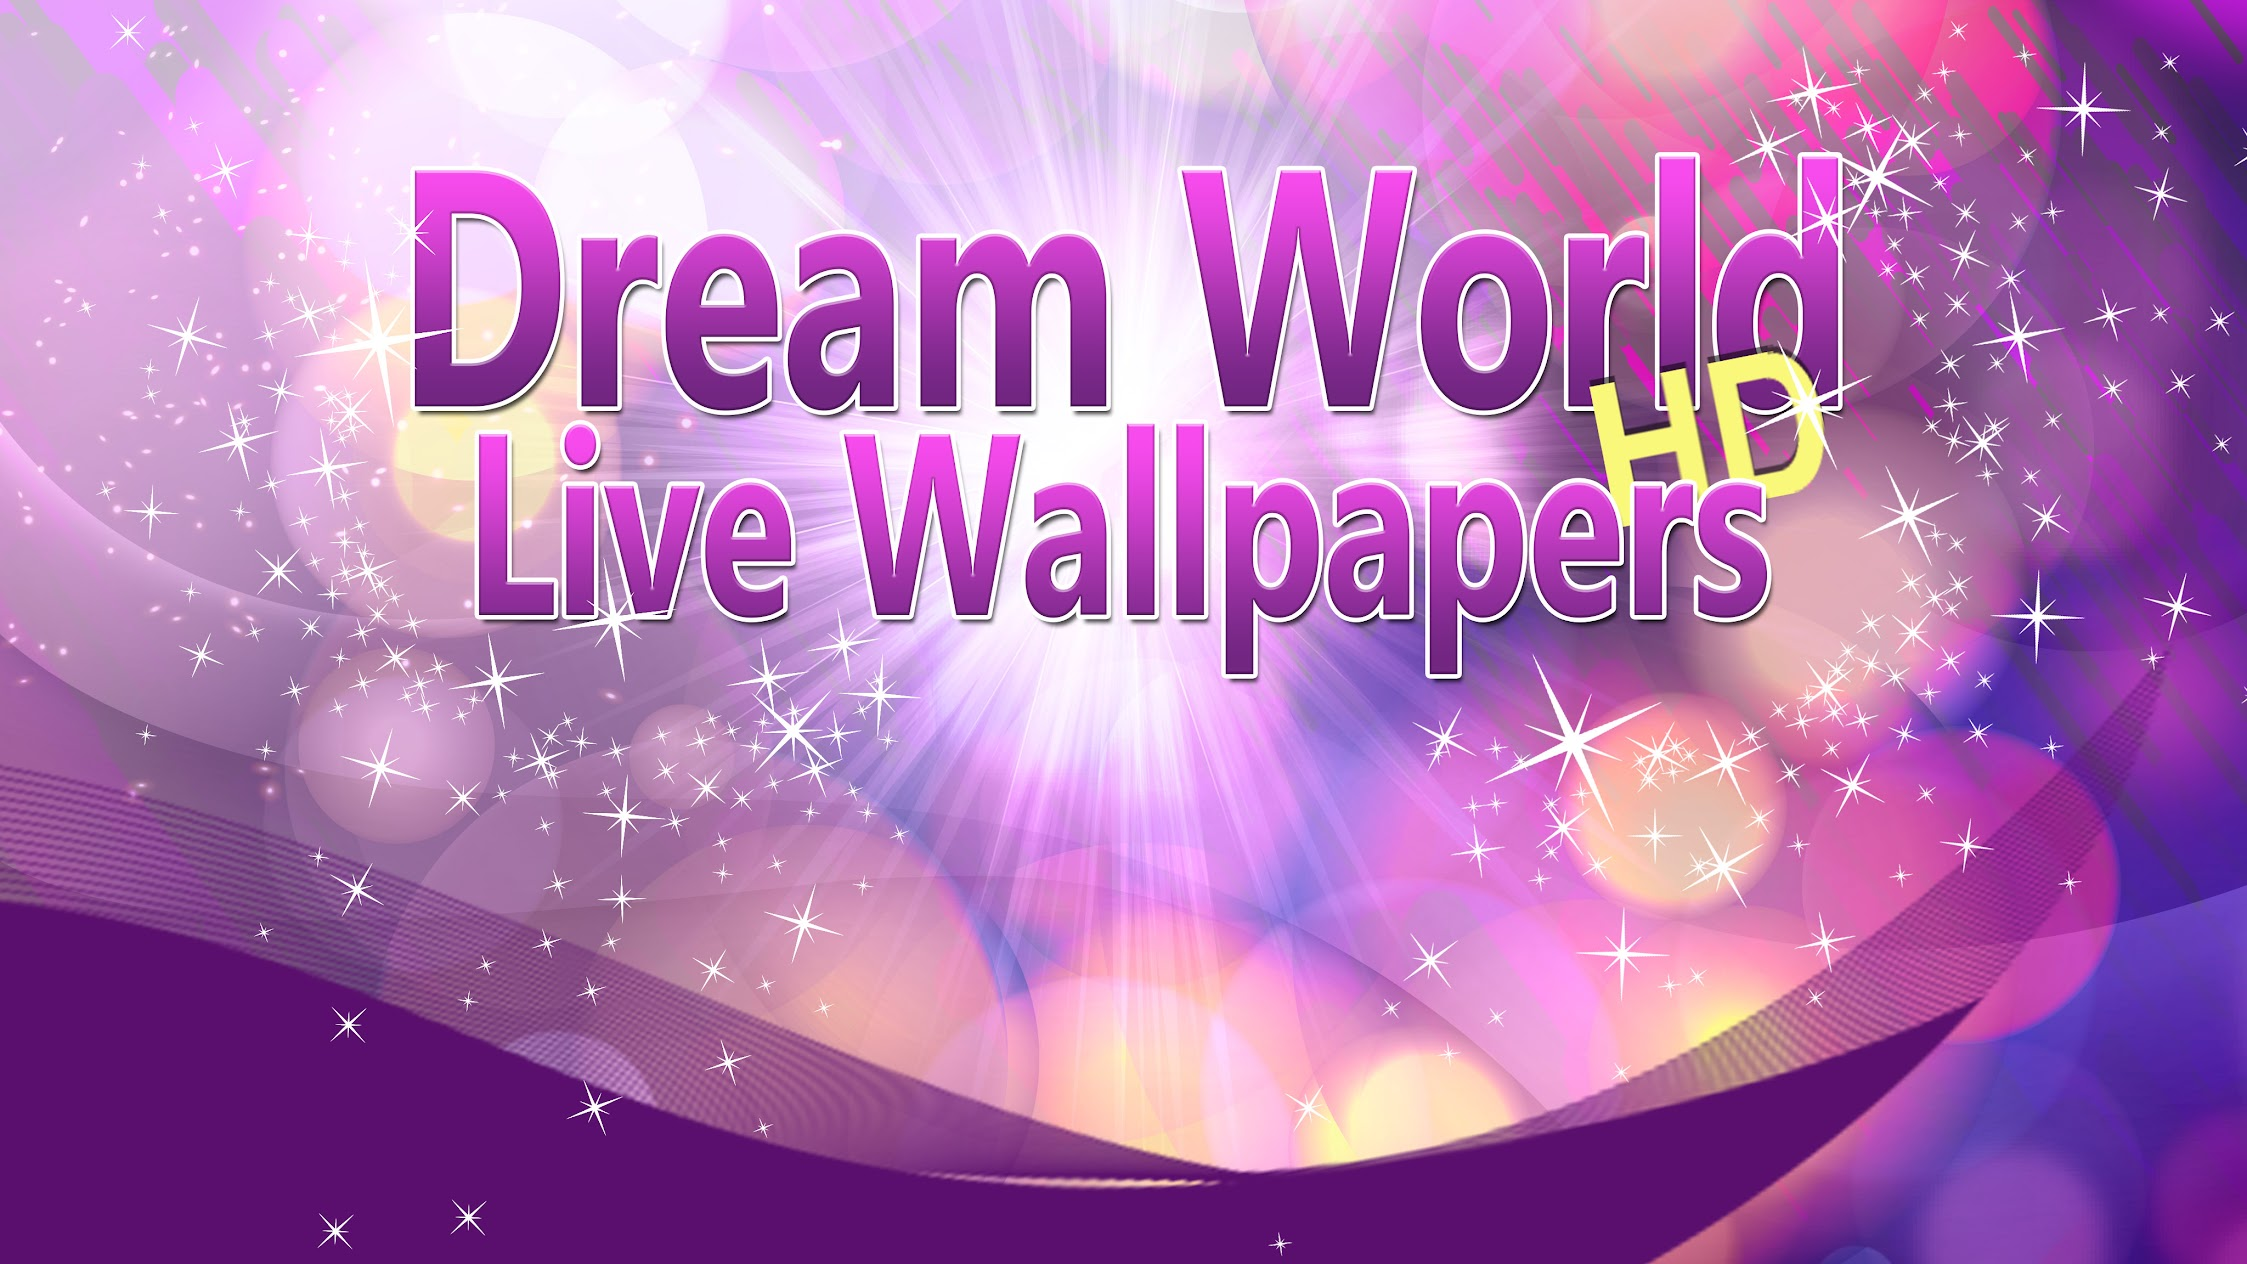 Android Apps By Dream World HD Live Wallpapers On Google Play